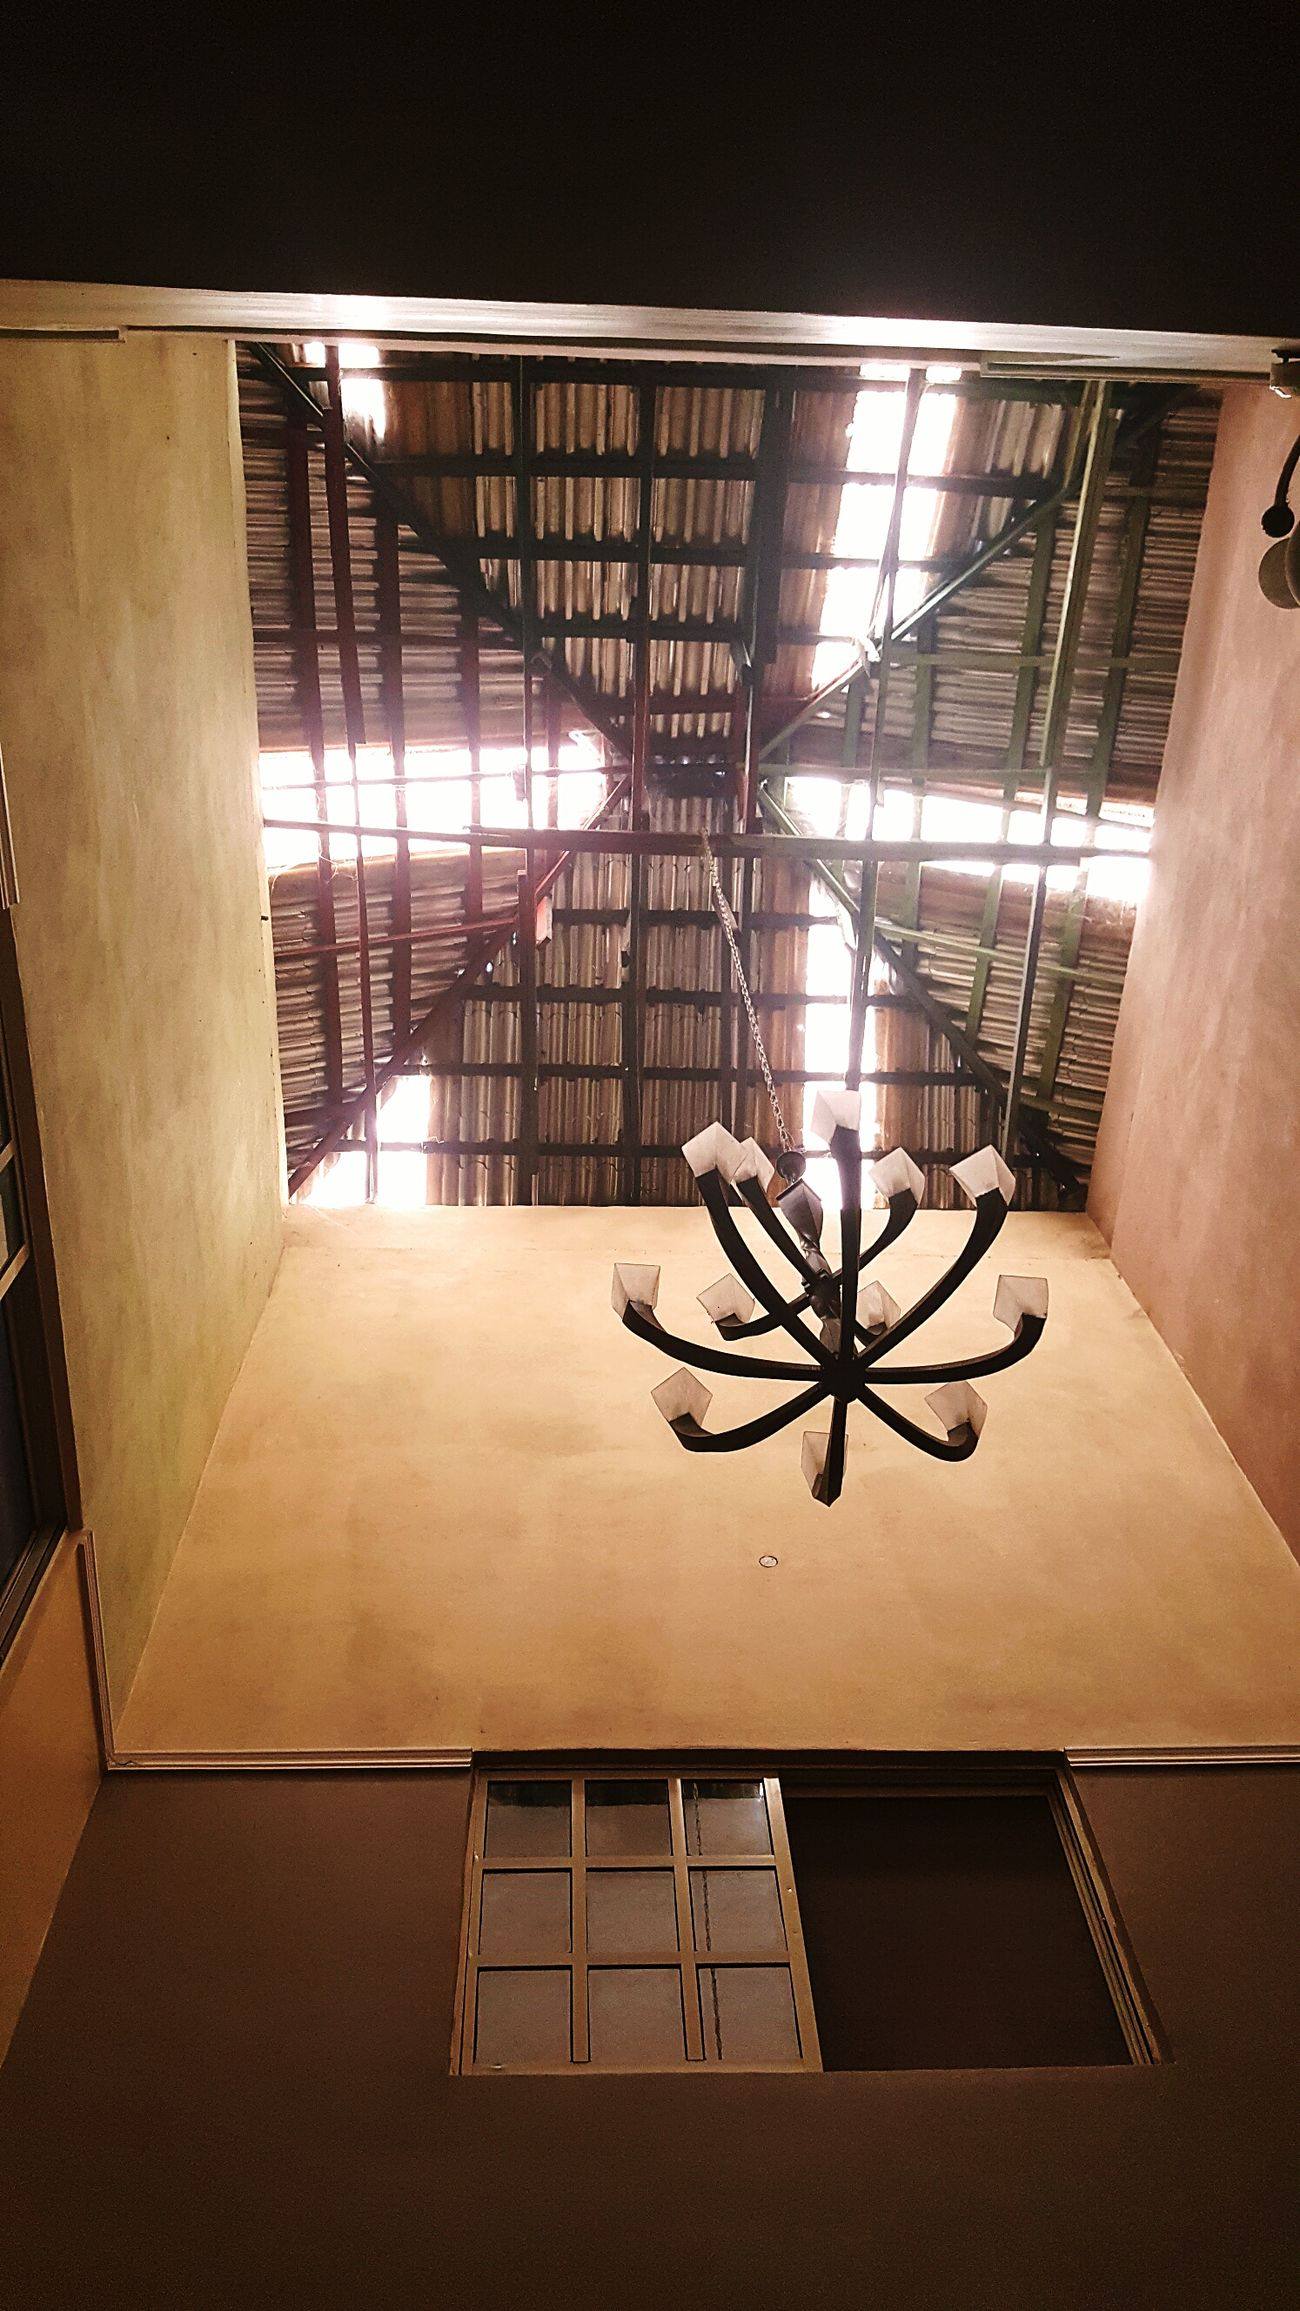 Village Skylights Indoors  No People Day AMPt - My Perspective Nigeria Cieling Lookingup Interior Design Built Structure Architecture Interior Views Enjoying The View